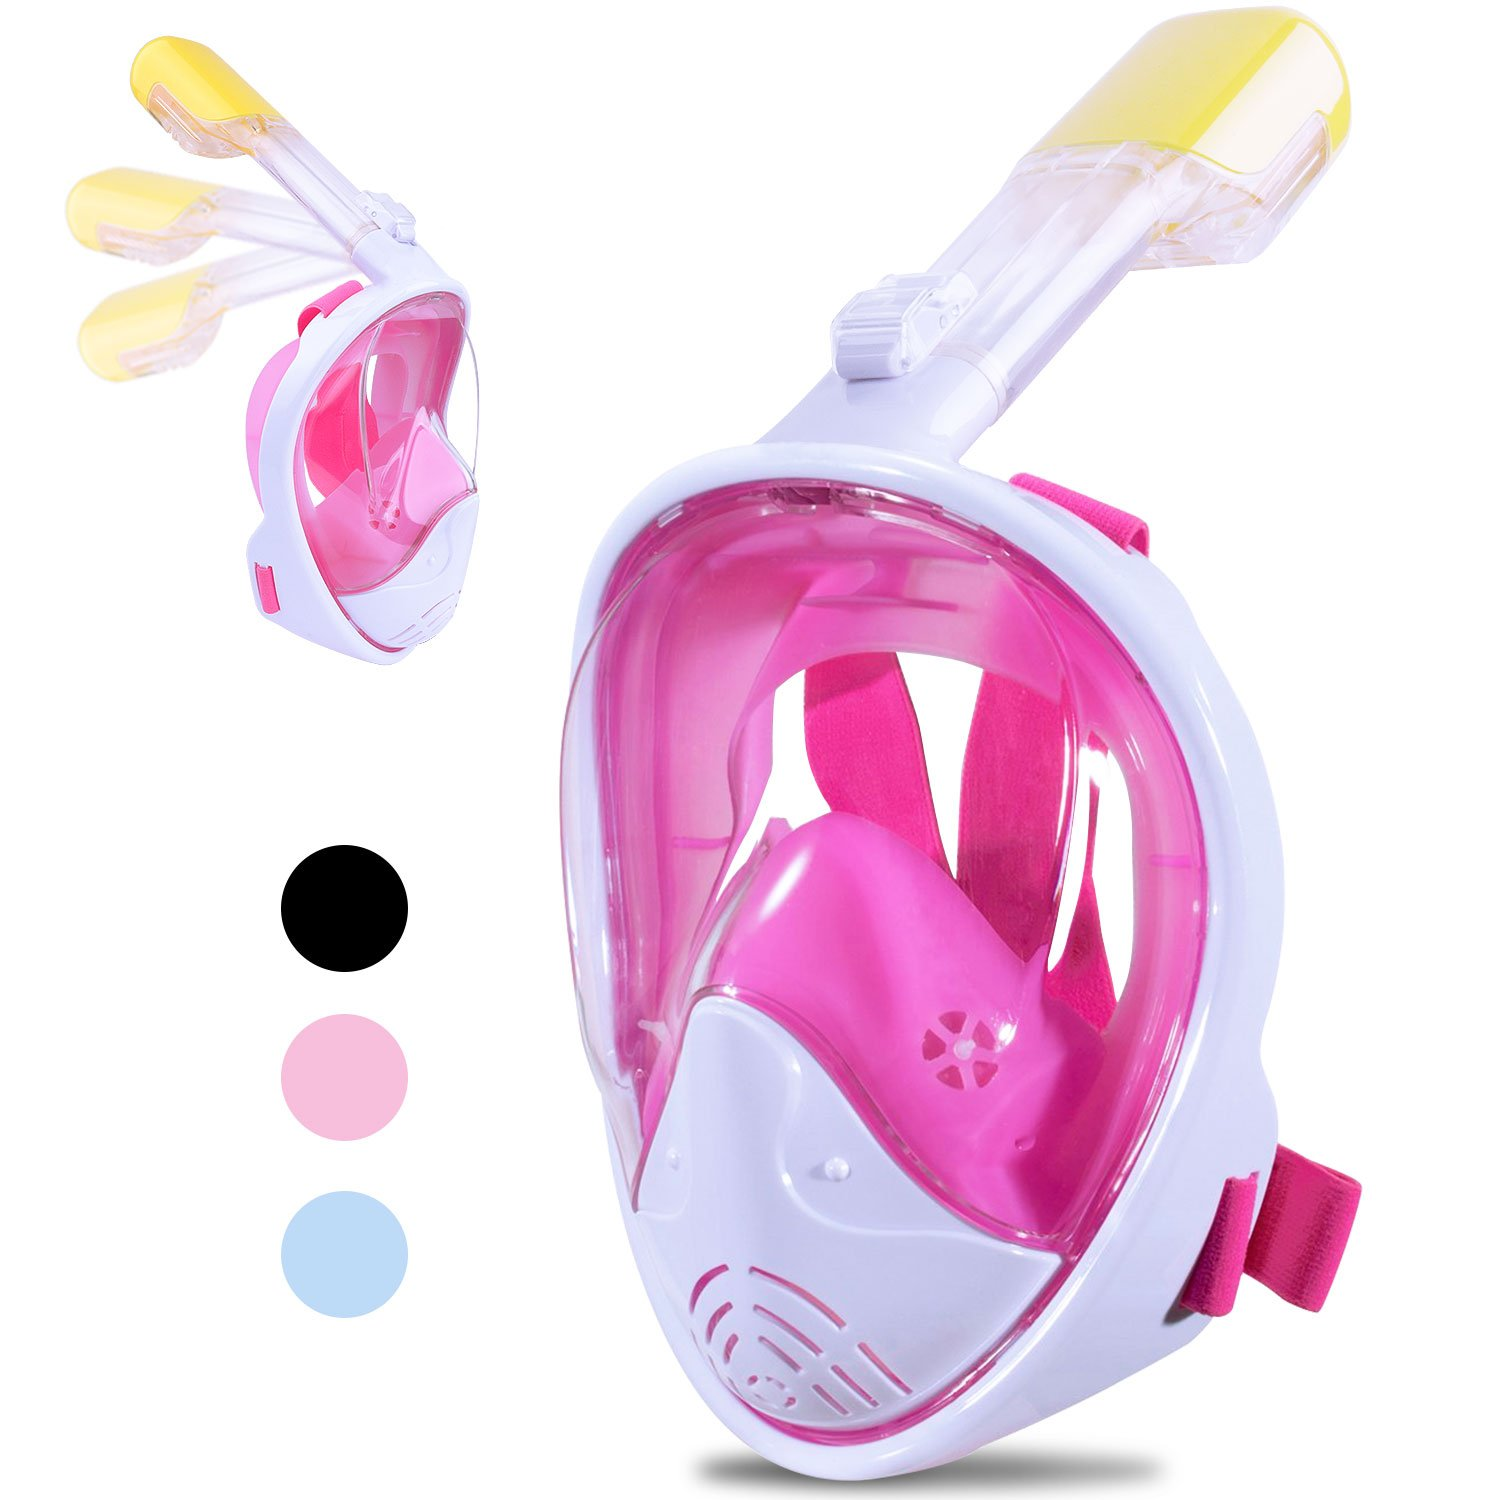 Greatever [2018 Newest Version] View Panoramic Snorkel Set, Dry Top Set Anti-Fog Anti-Leak for Adults&Kids(Pink, S/M)